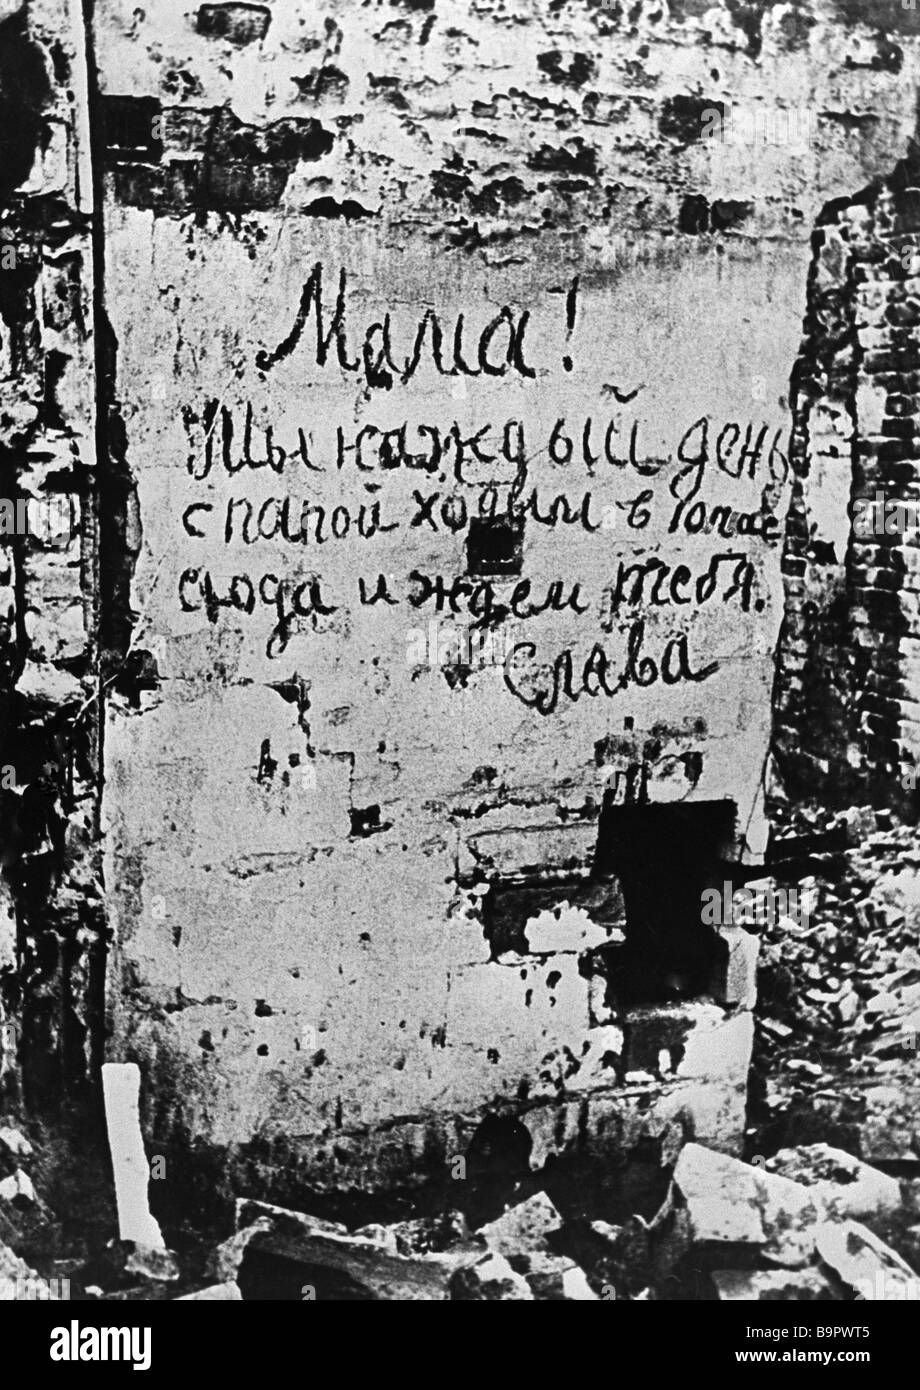 An inscription on the wall of a ruined house - Stock Image